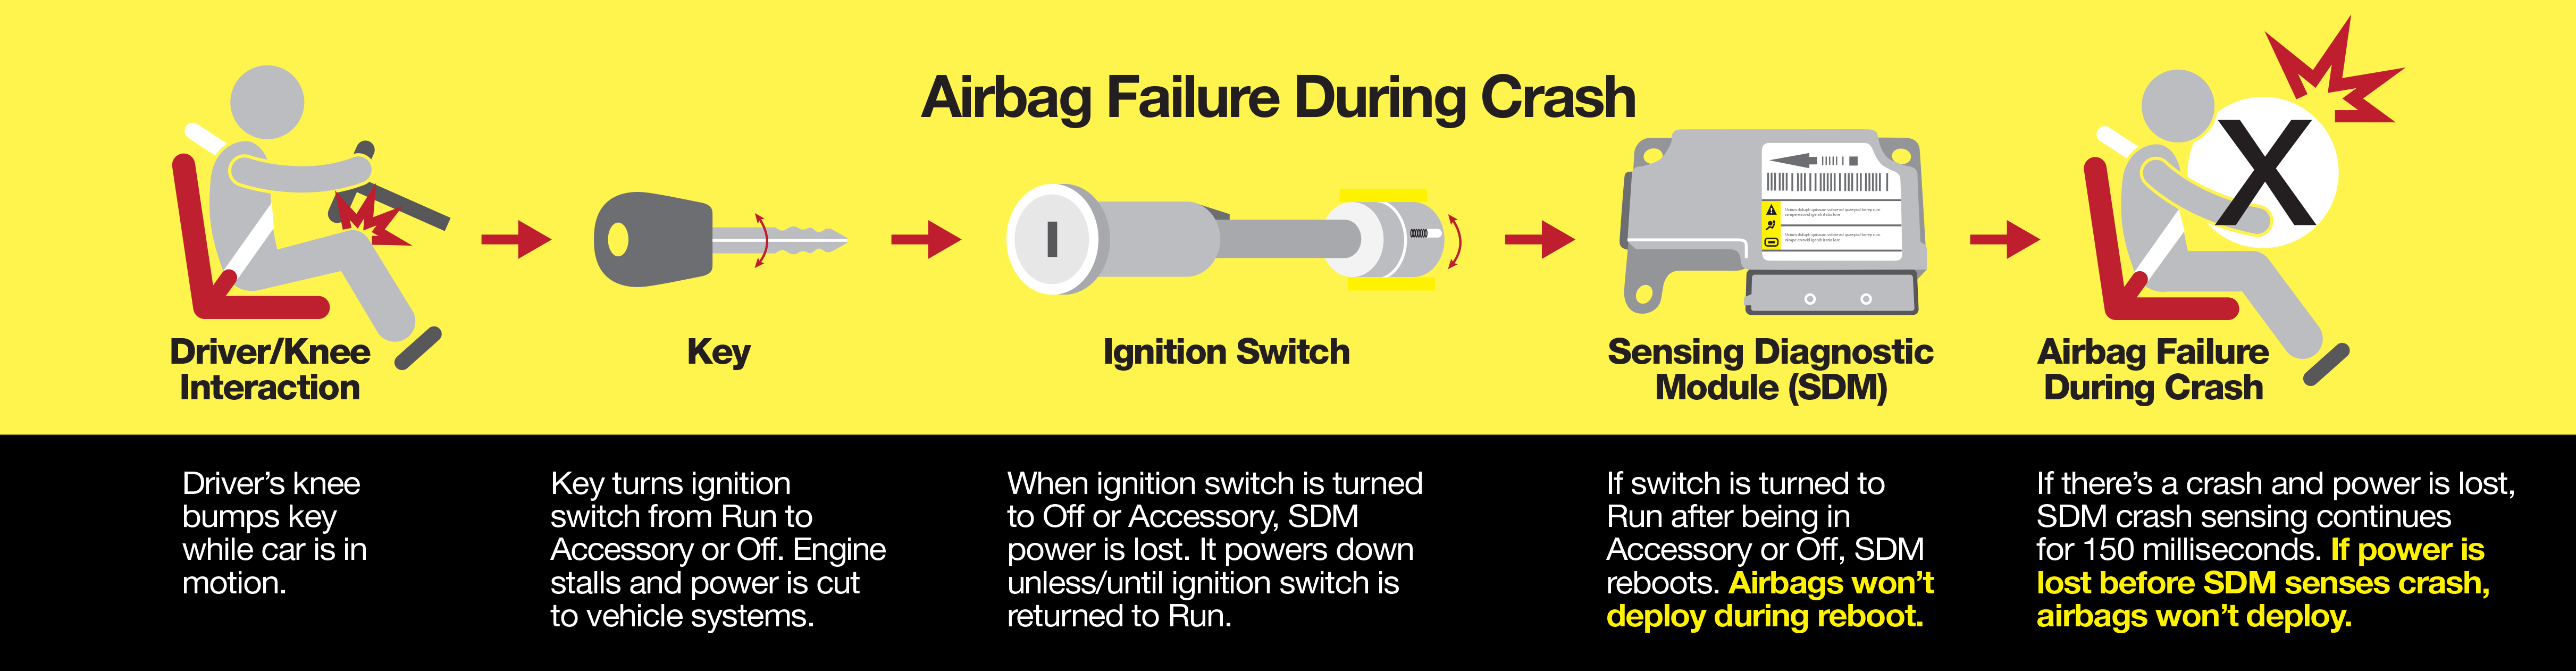 airbag failure diagram